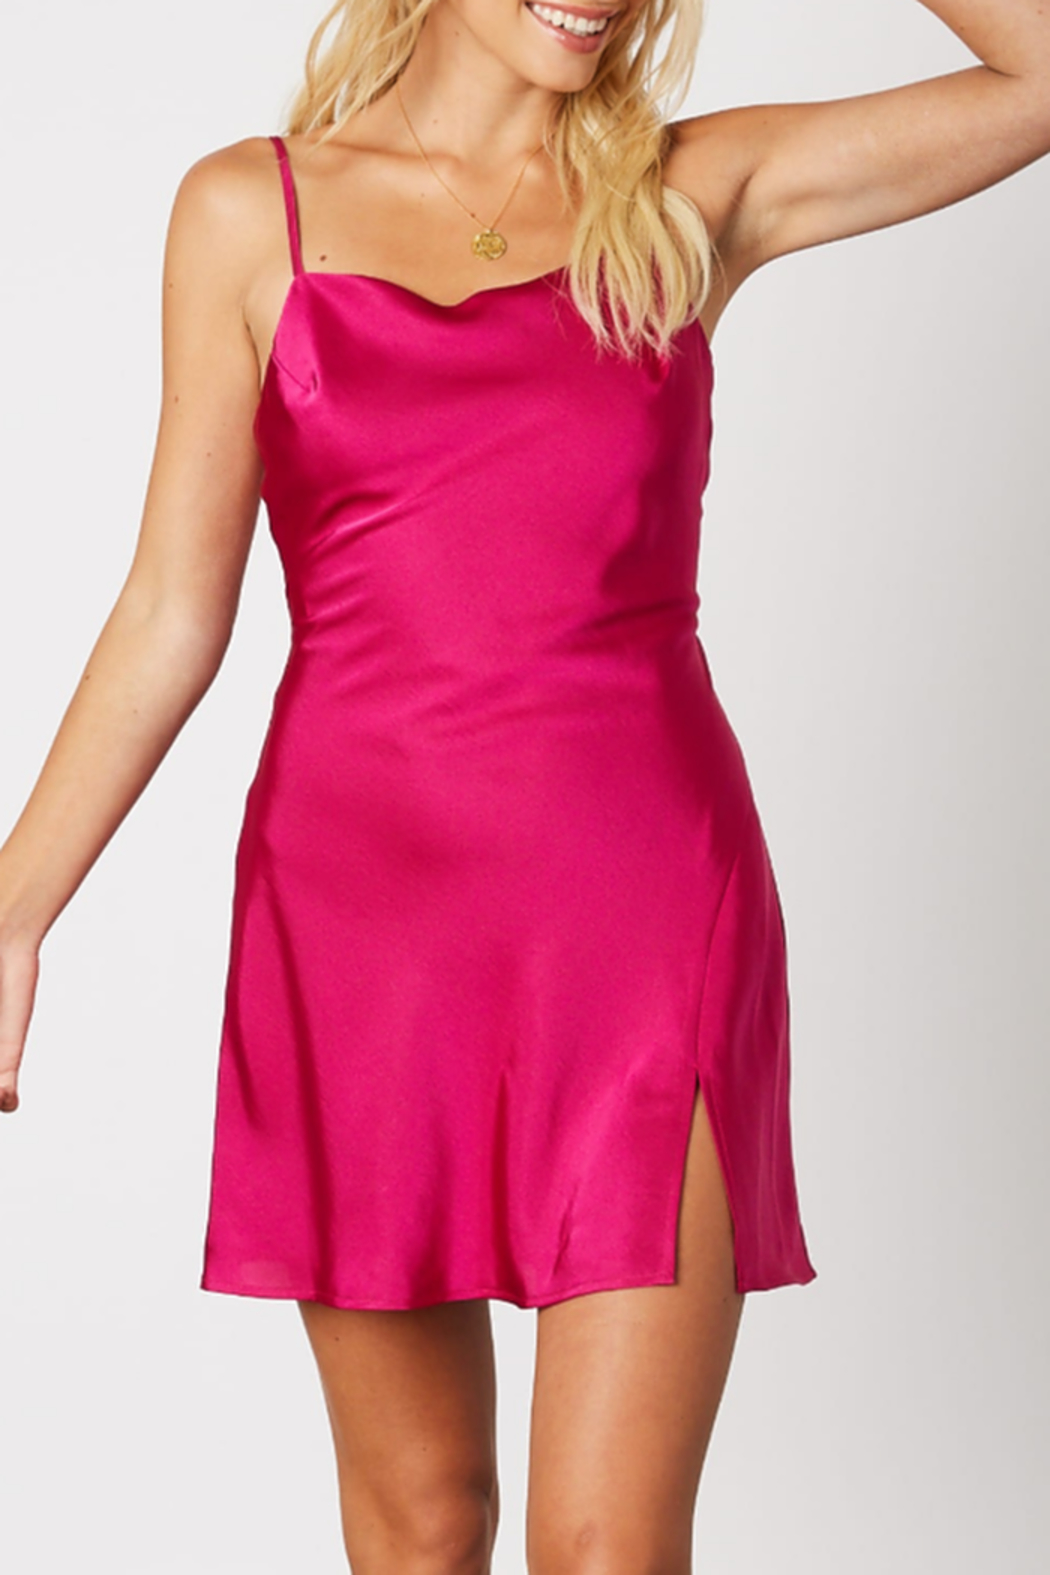 Cotton Candy Satin Party Dress - Main Image